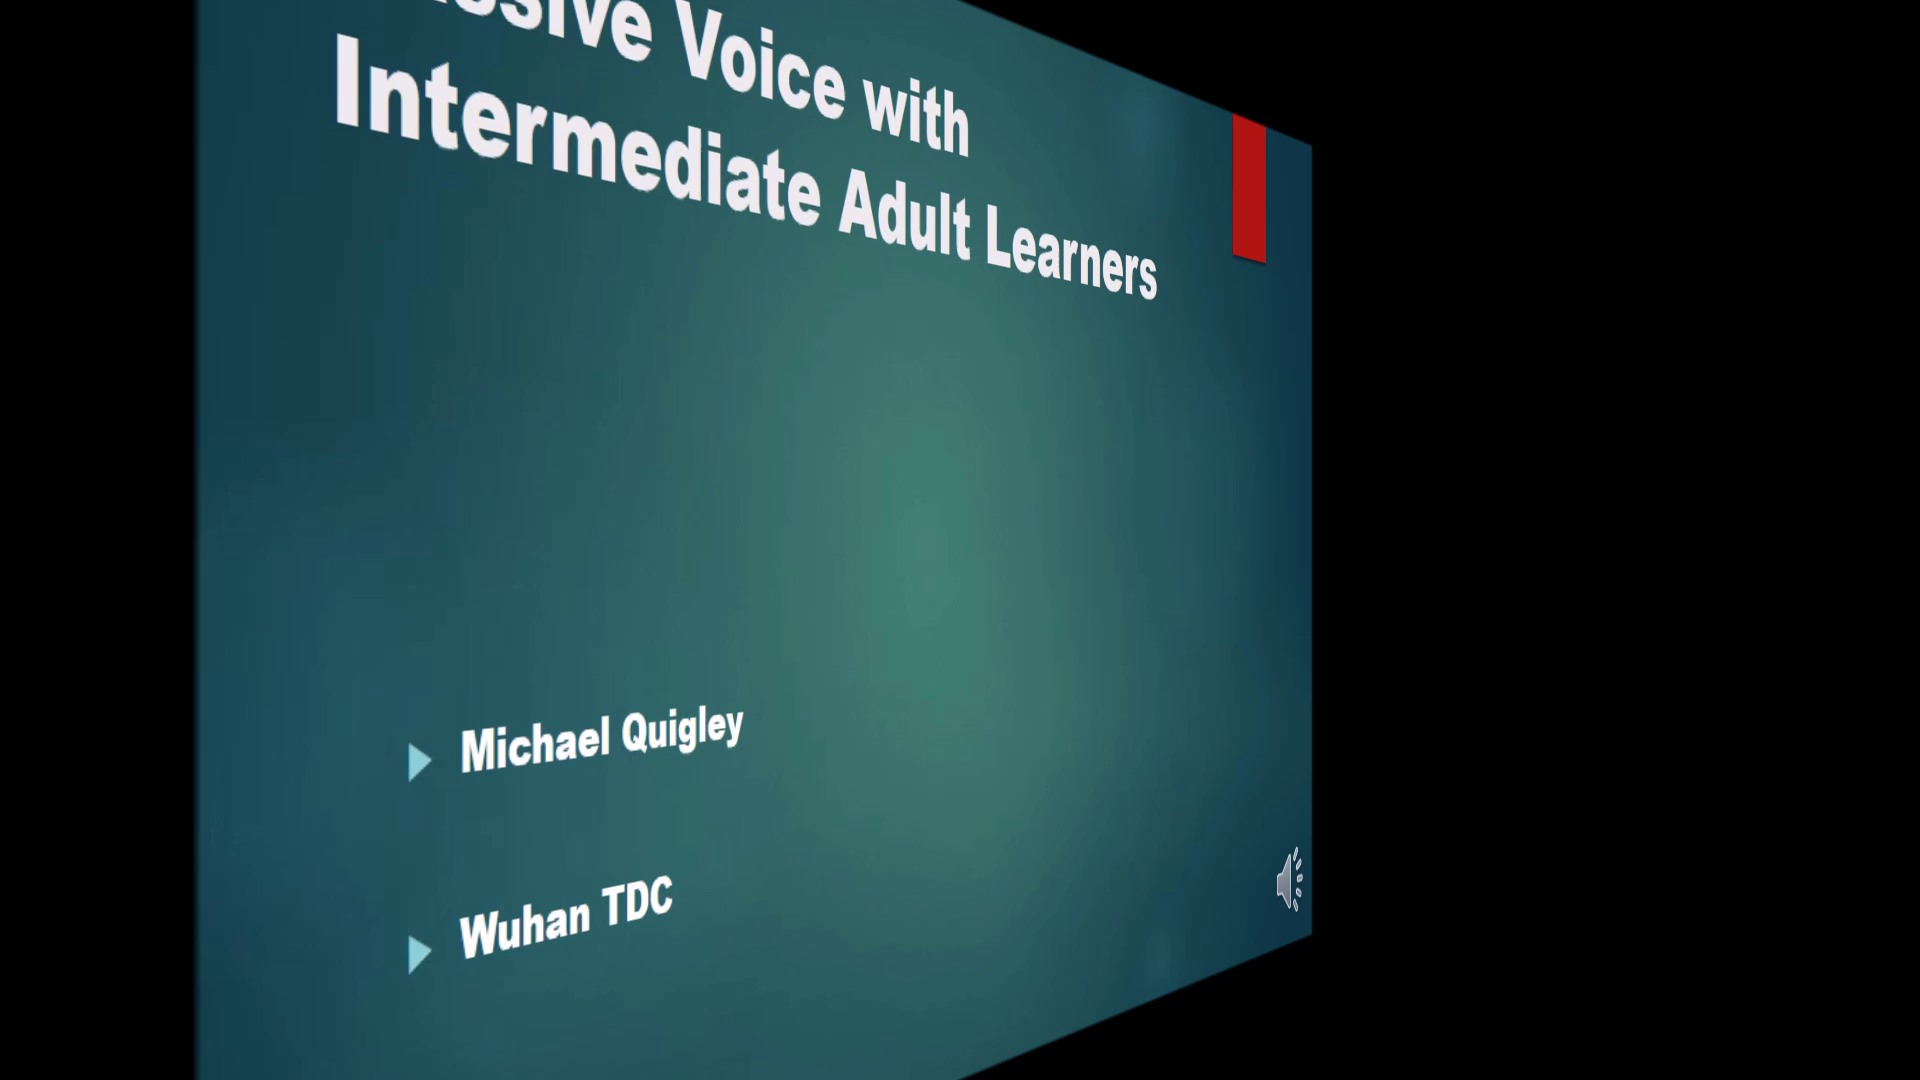 Teaching Passive Voice to Intermediate Adults